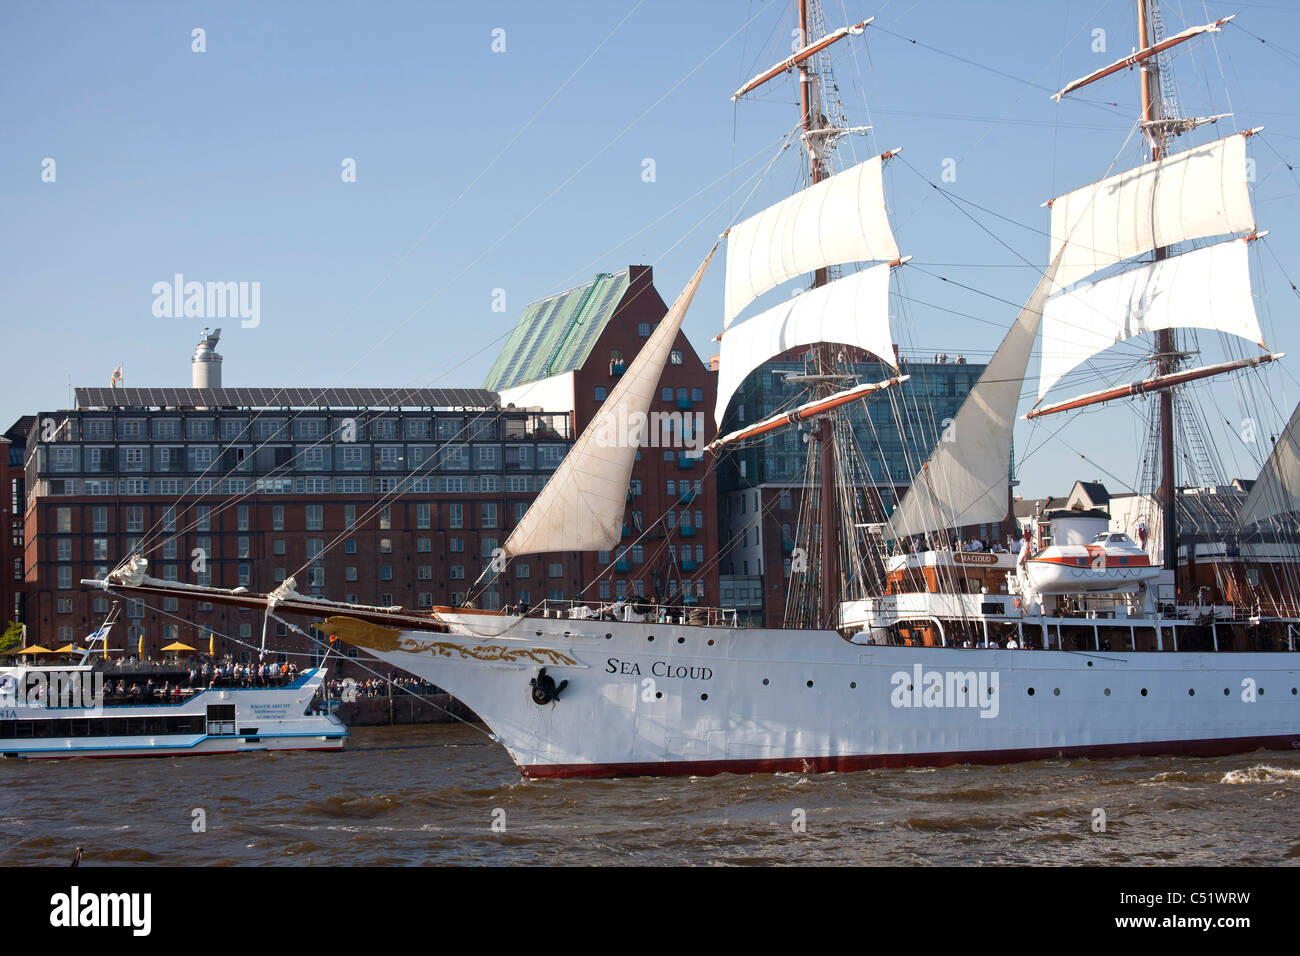 Sea Cloud at the Harbour Birthday 2011 in the free and Hanseatic City of Hamburg, Germany - Stock Image